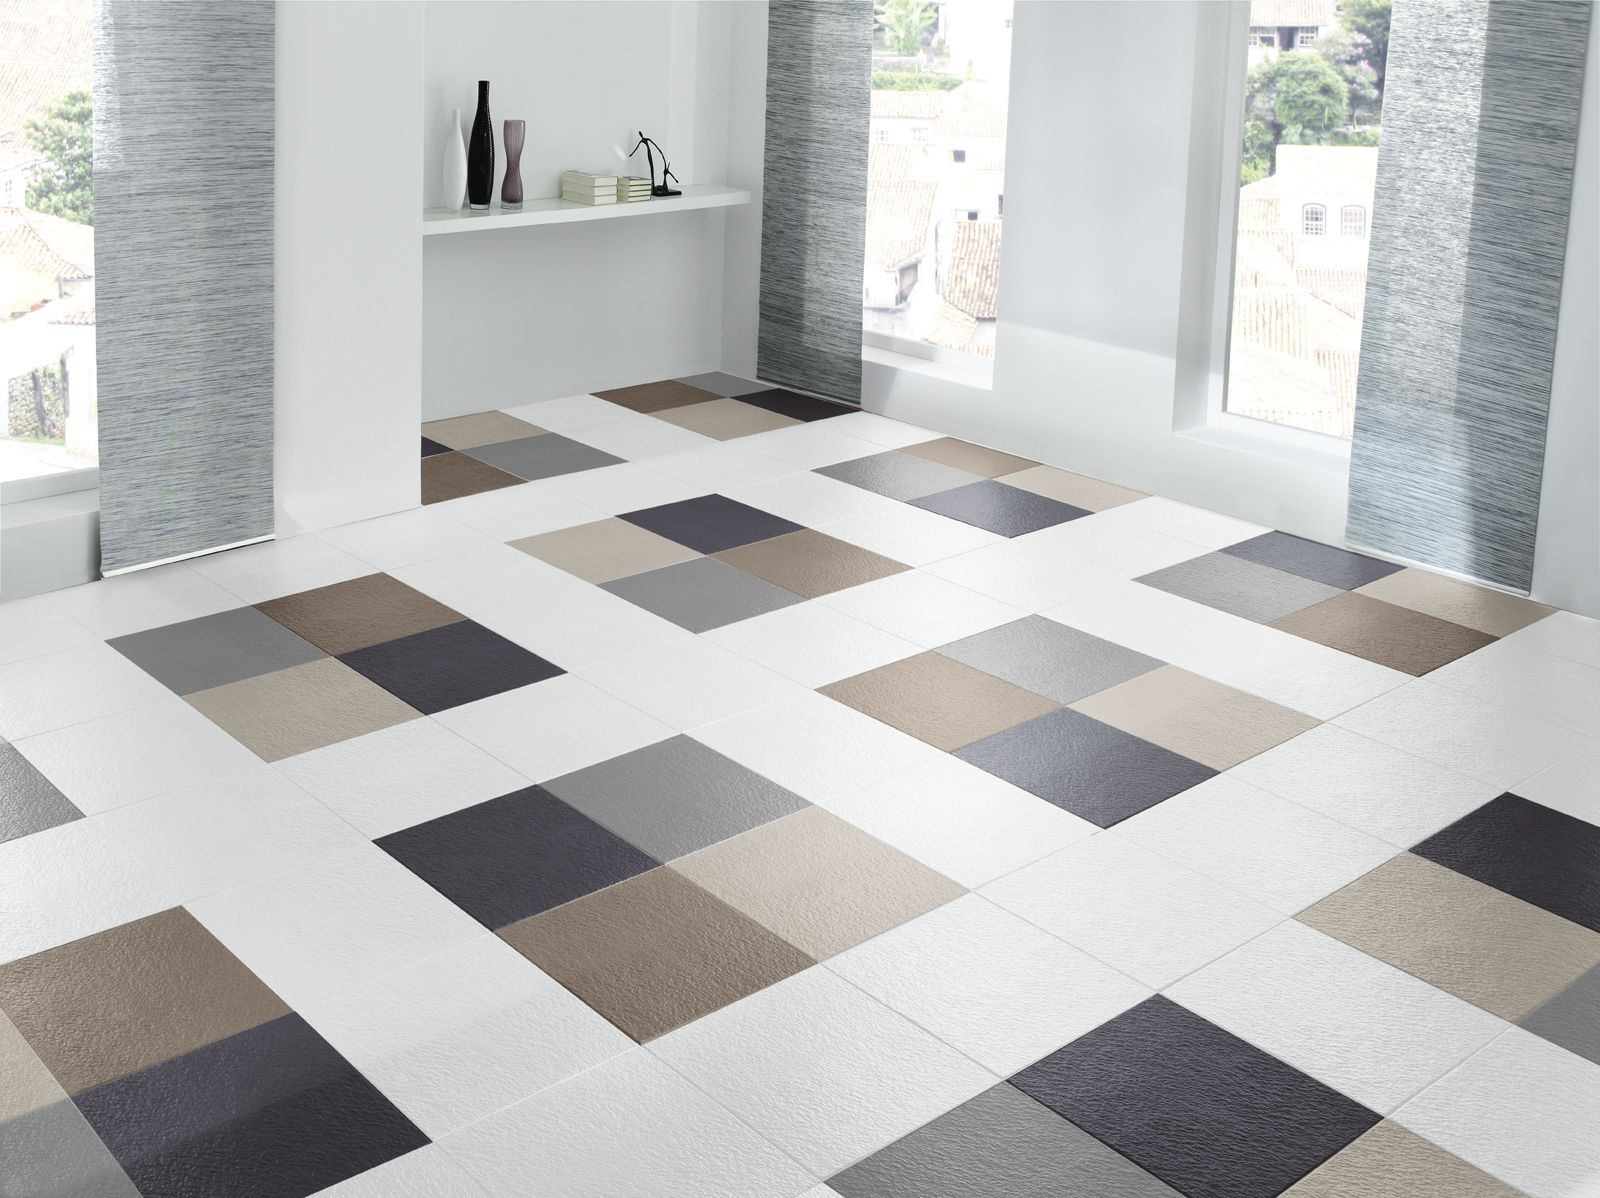 Pin by gorageous unique dcor on floors dcor pinterest types of flooring tiles flooring tiles in india have over the years gained popularity over the cemented and concrete flooring tiles are available in dailygadgetfo Images